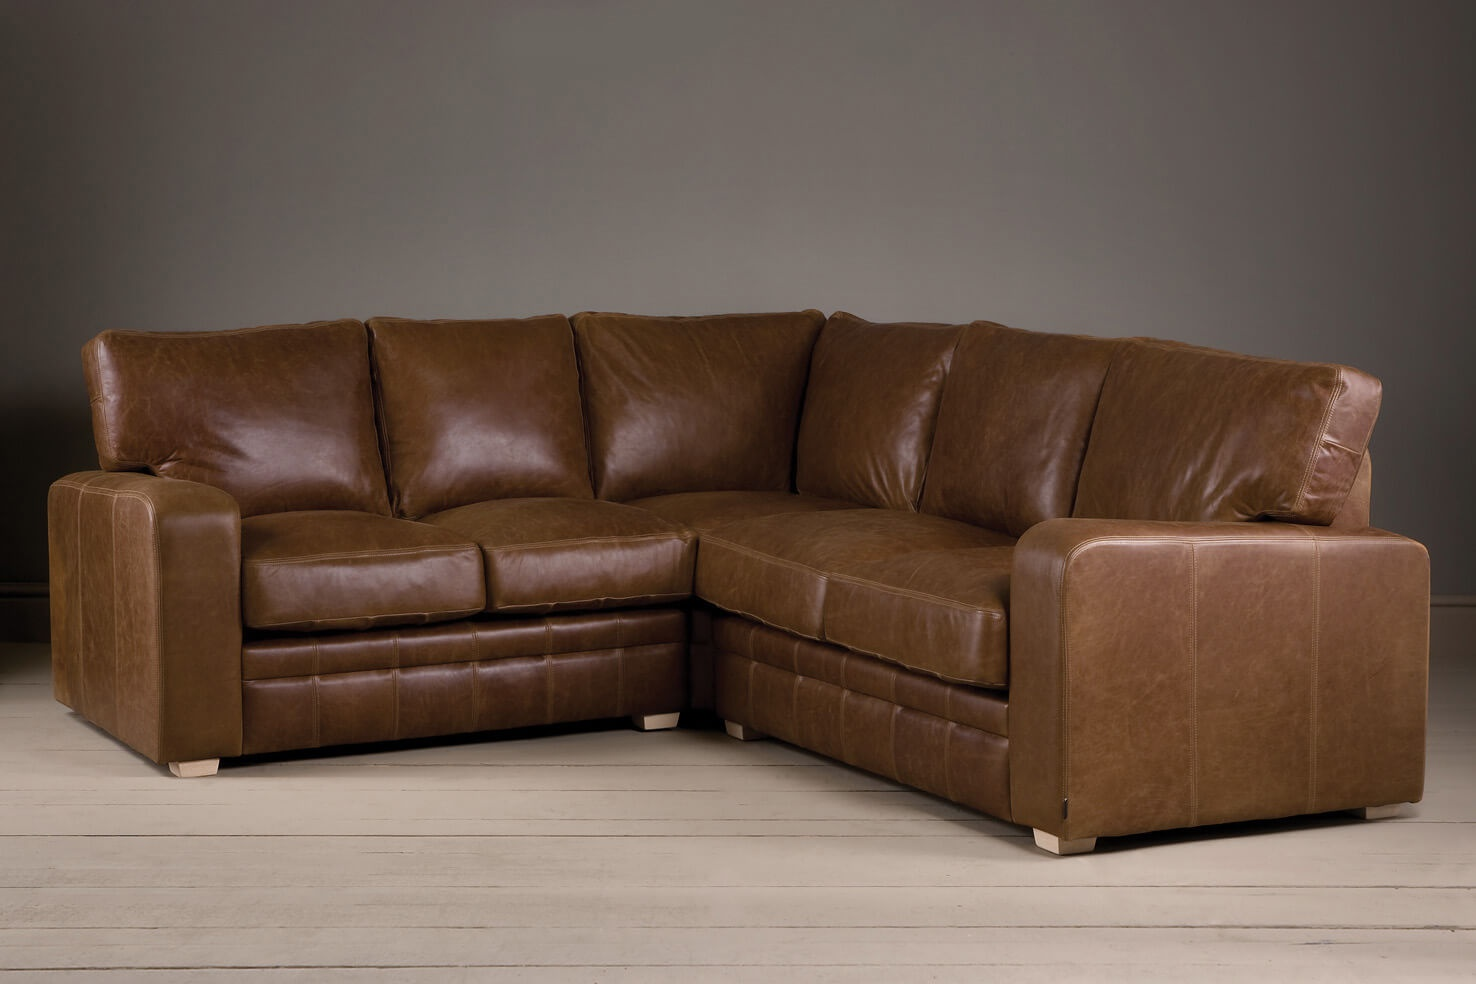 The Square Arm Leather Corner Sofa QFKWSPW